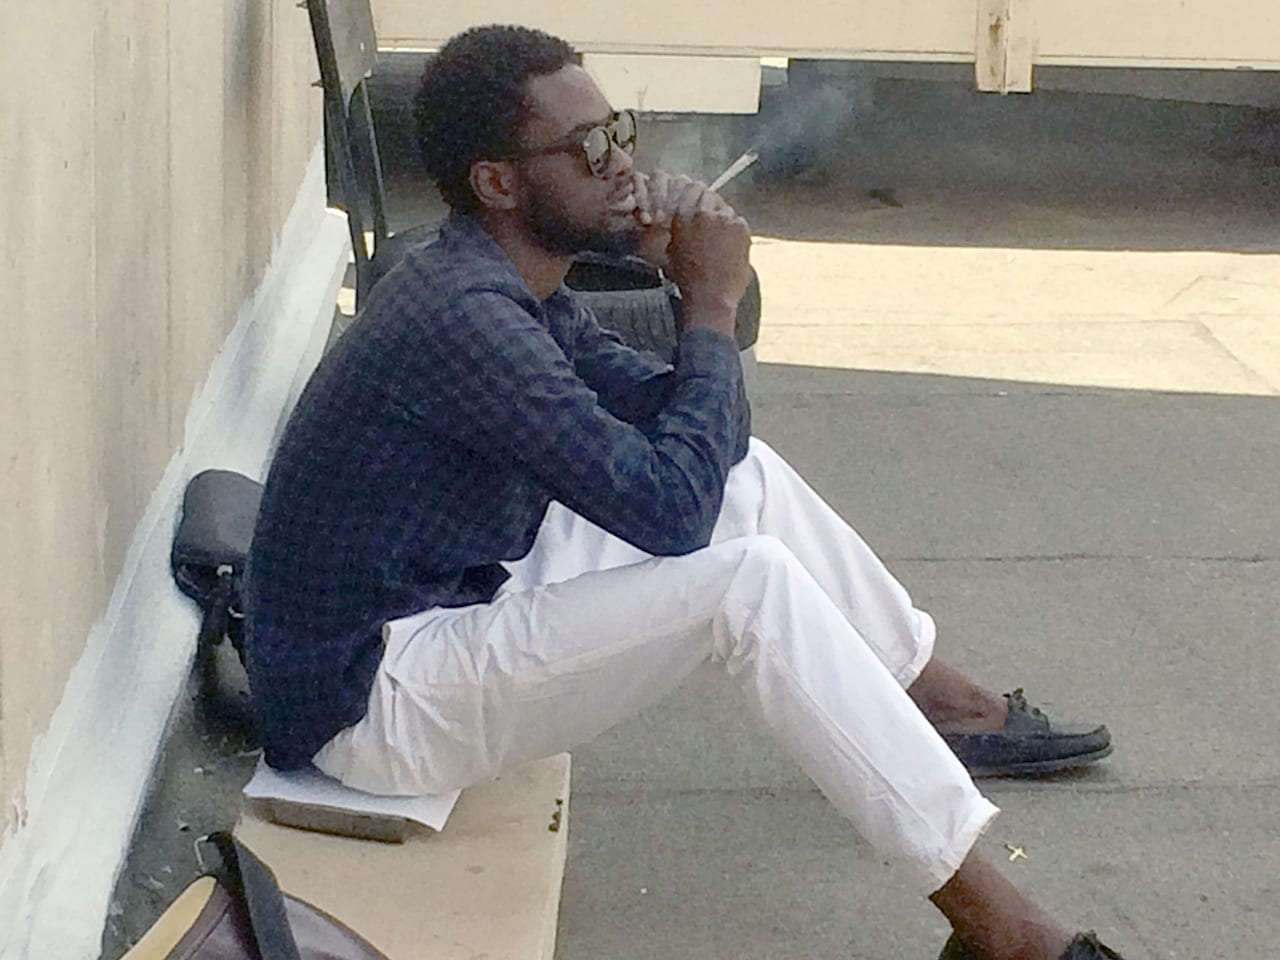 A young man wearing a blue shirt and white pants smokes a joint on campus.